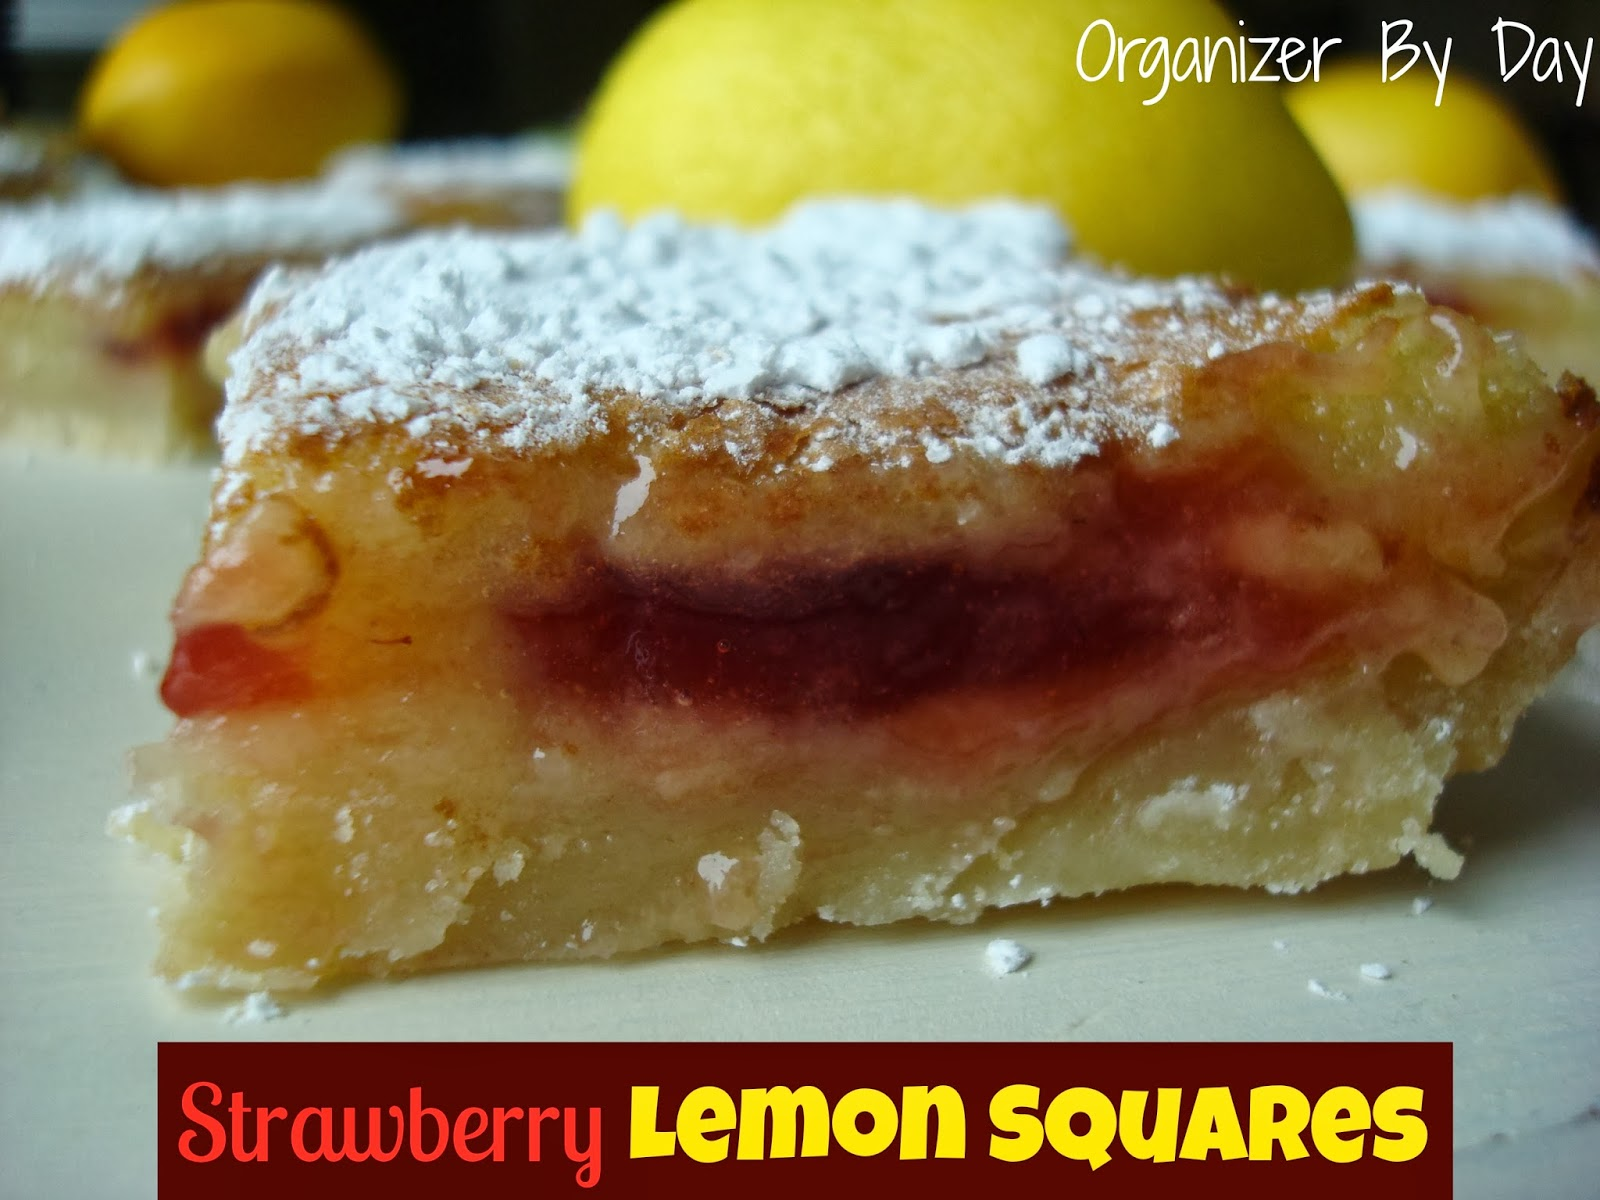 ... Chocolates and Crockpots! Come Check It Out!: Strawberry Lemon Squares